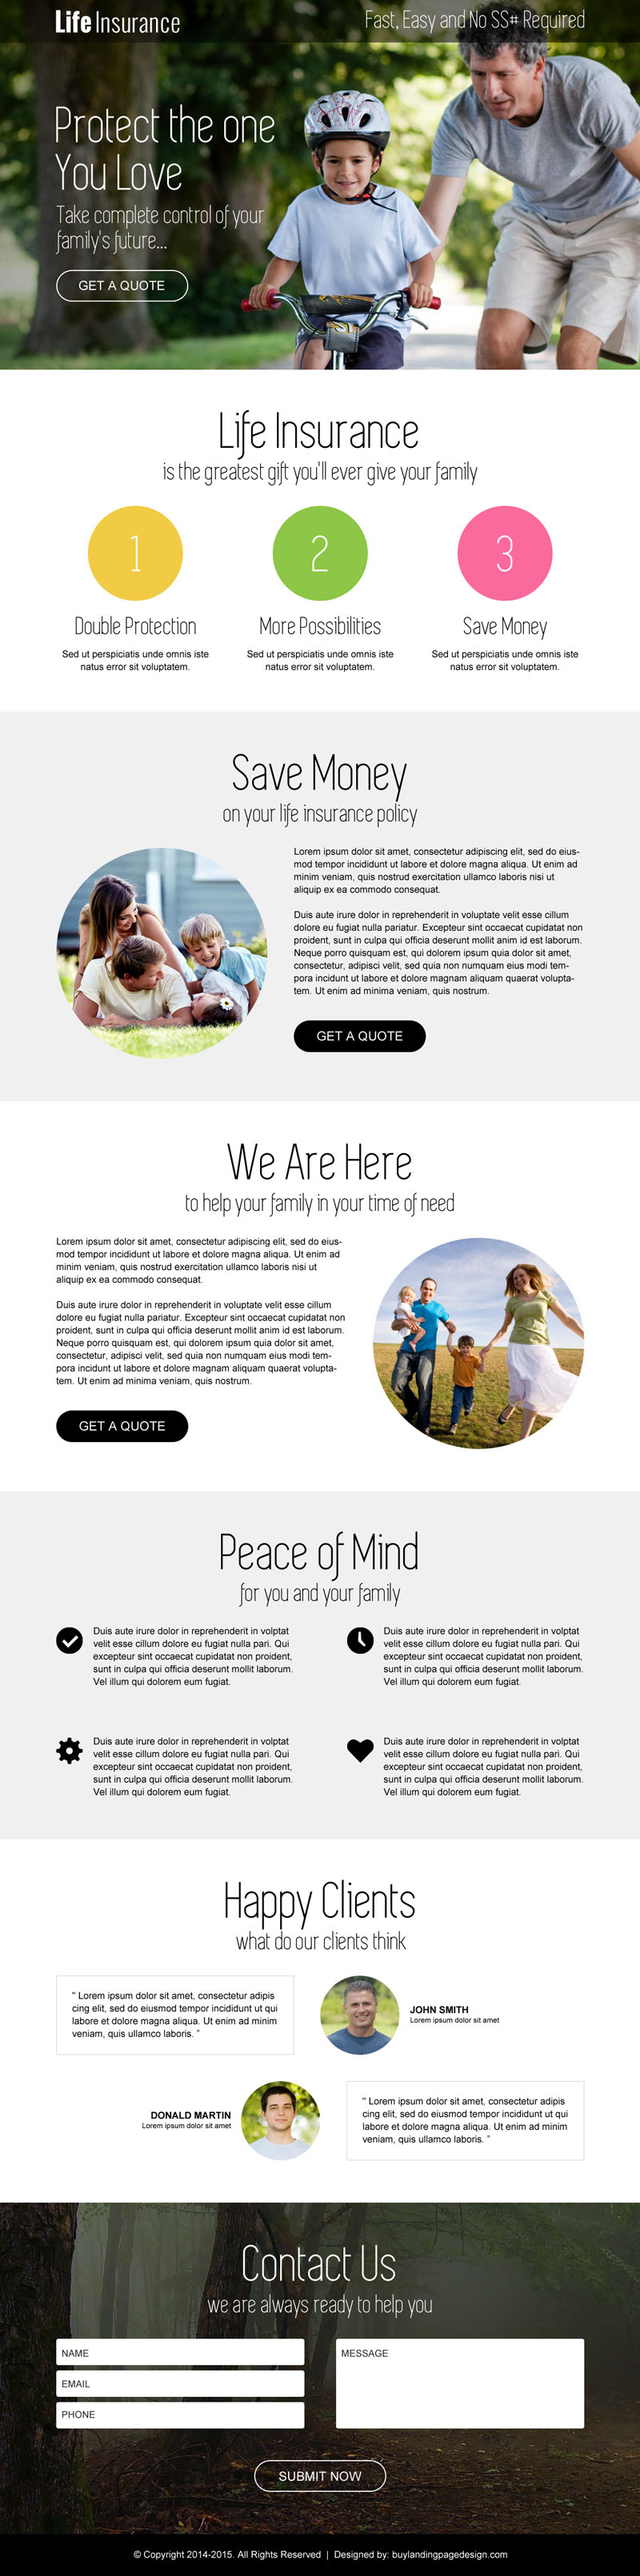 life-insurance-free-quote-service-call-to-action-and-lead-capture-landing-page-design-template-013